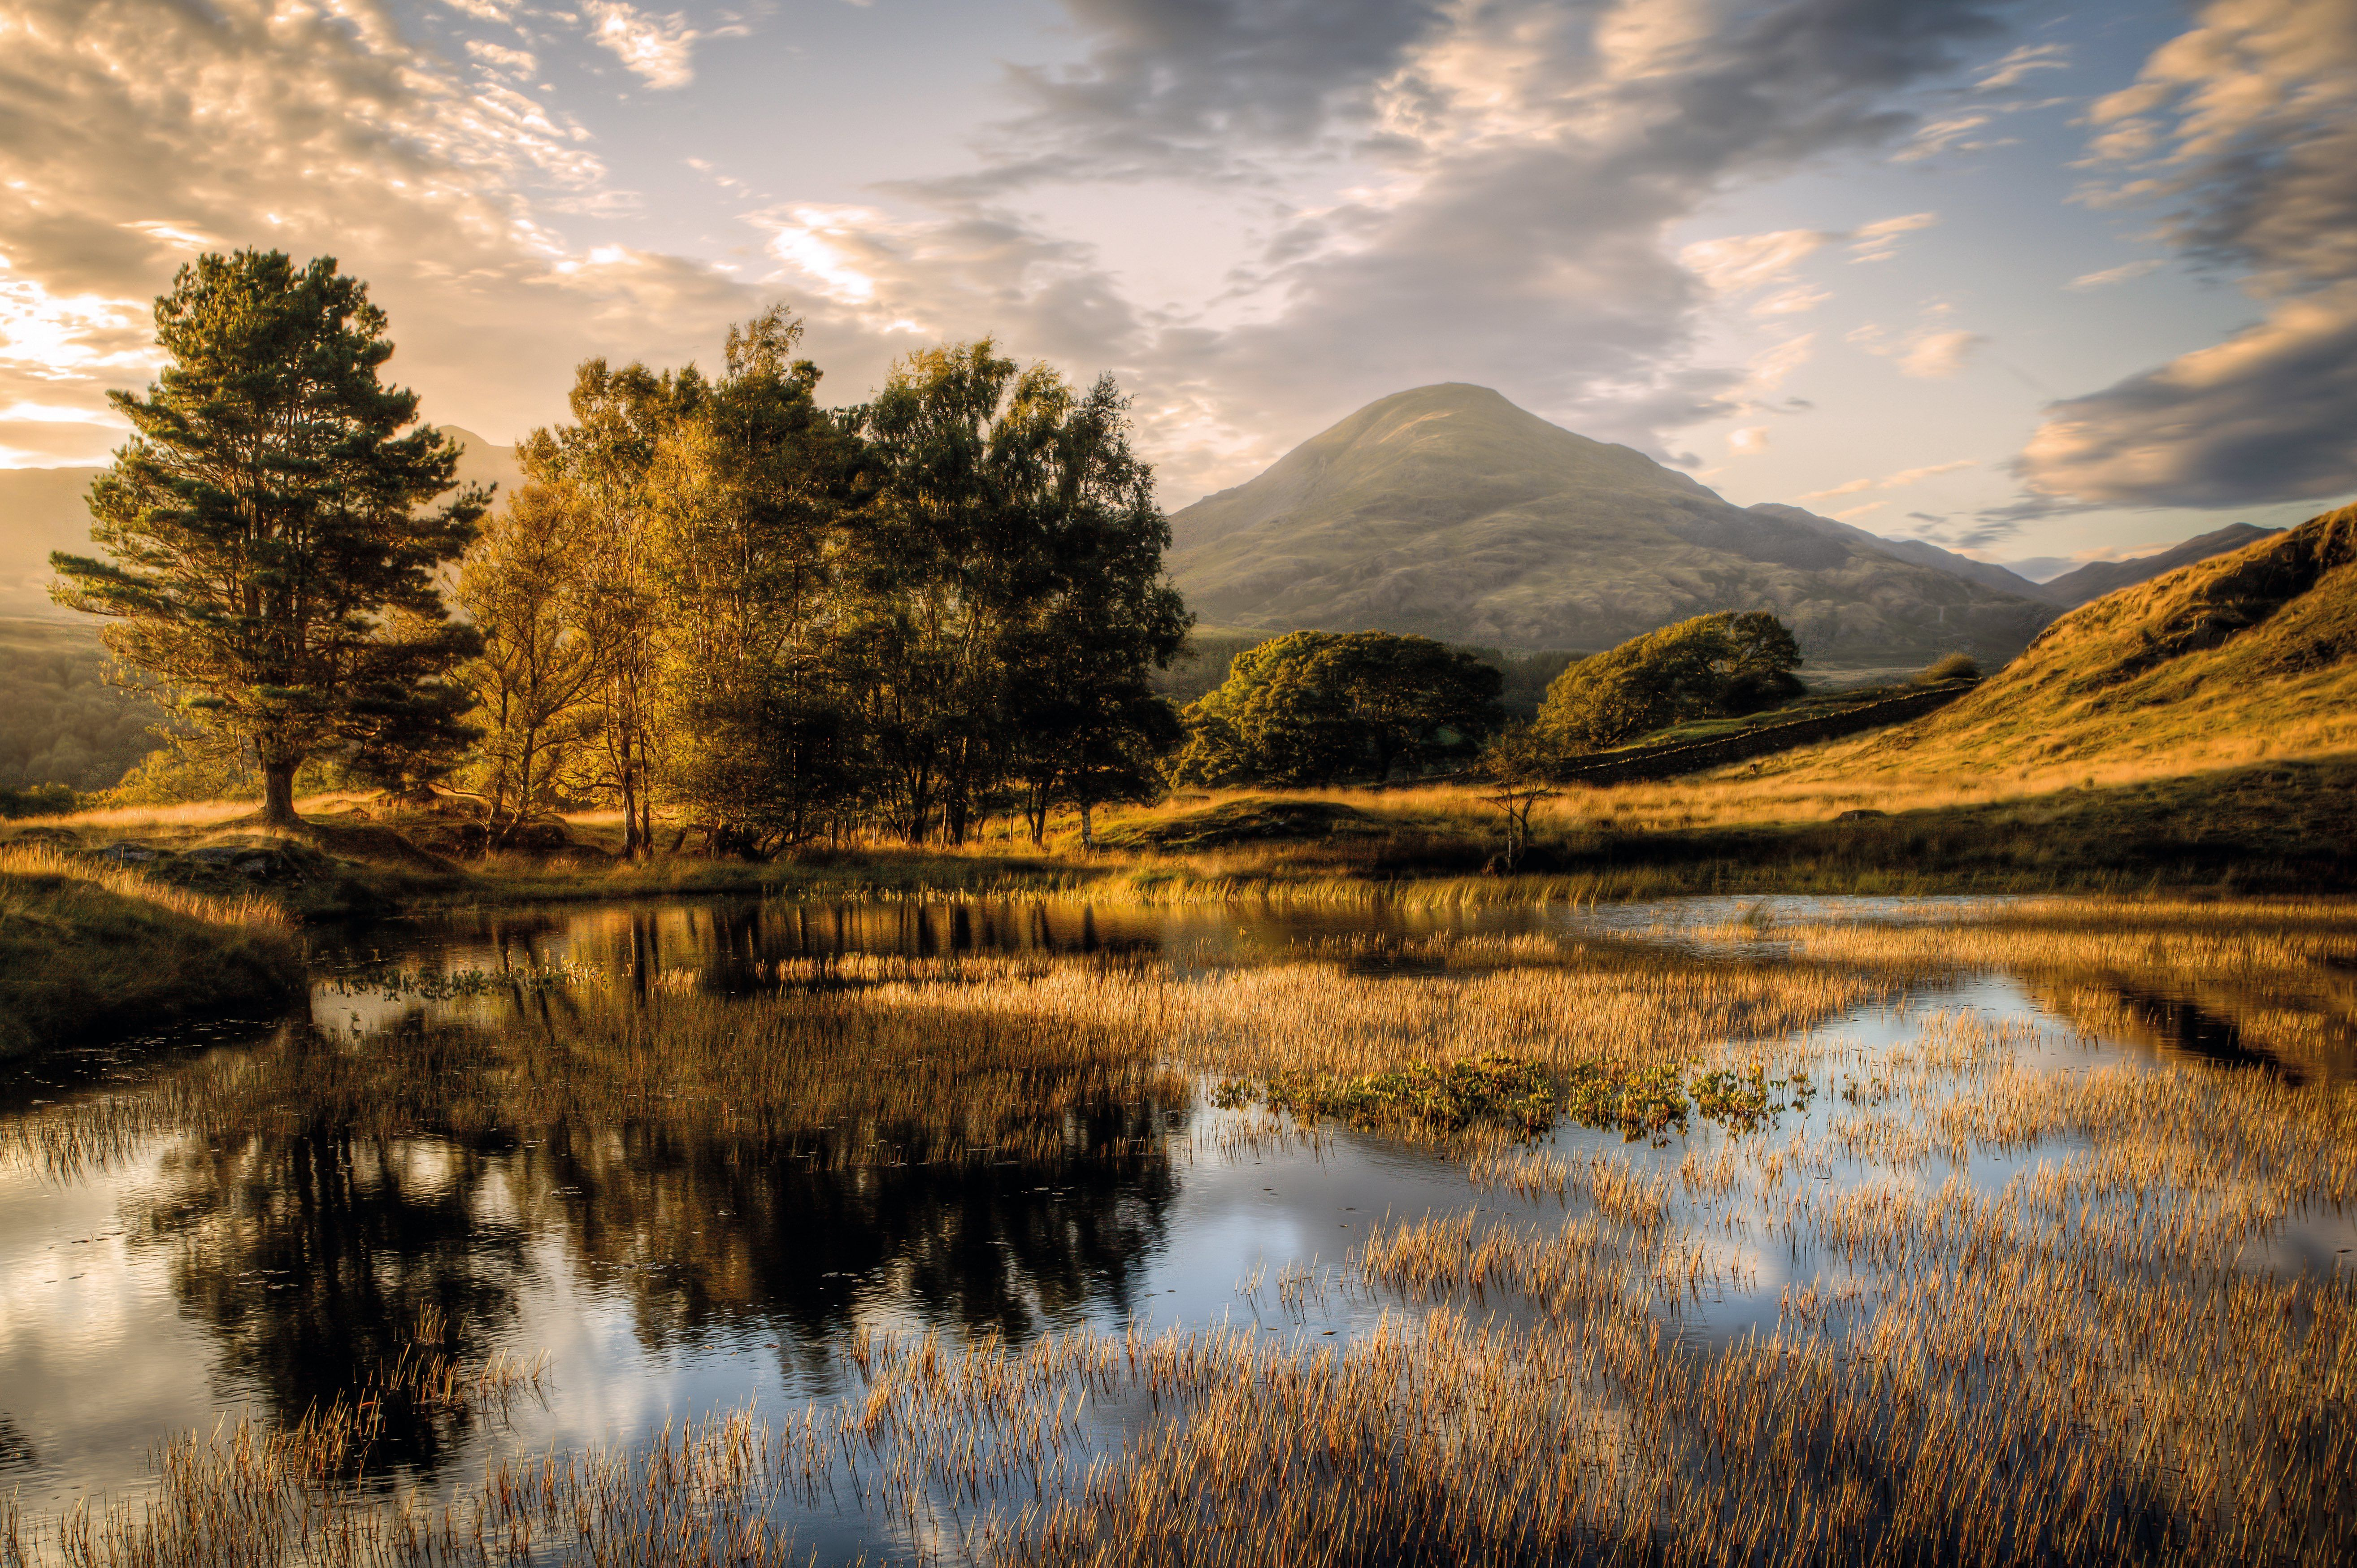 Pin By Annie Montgomery On Photography Landscape Photographers Landscape Photography Landscape